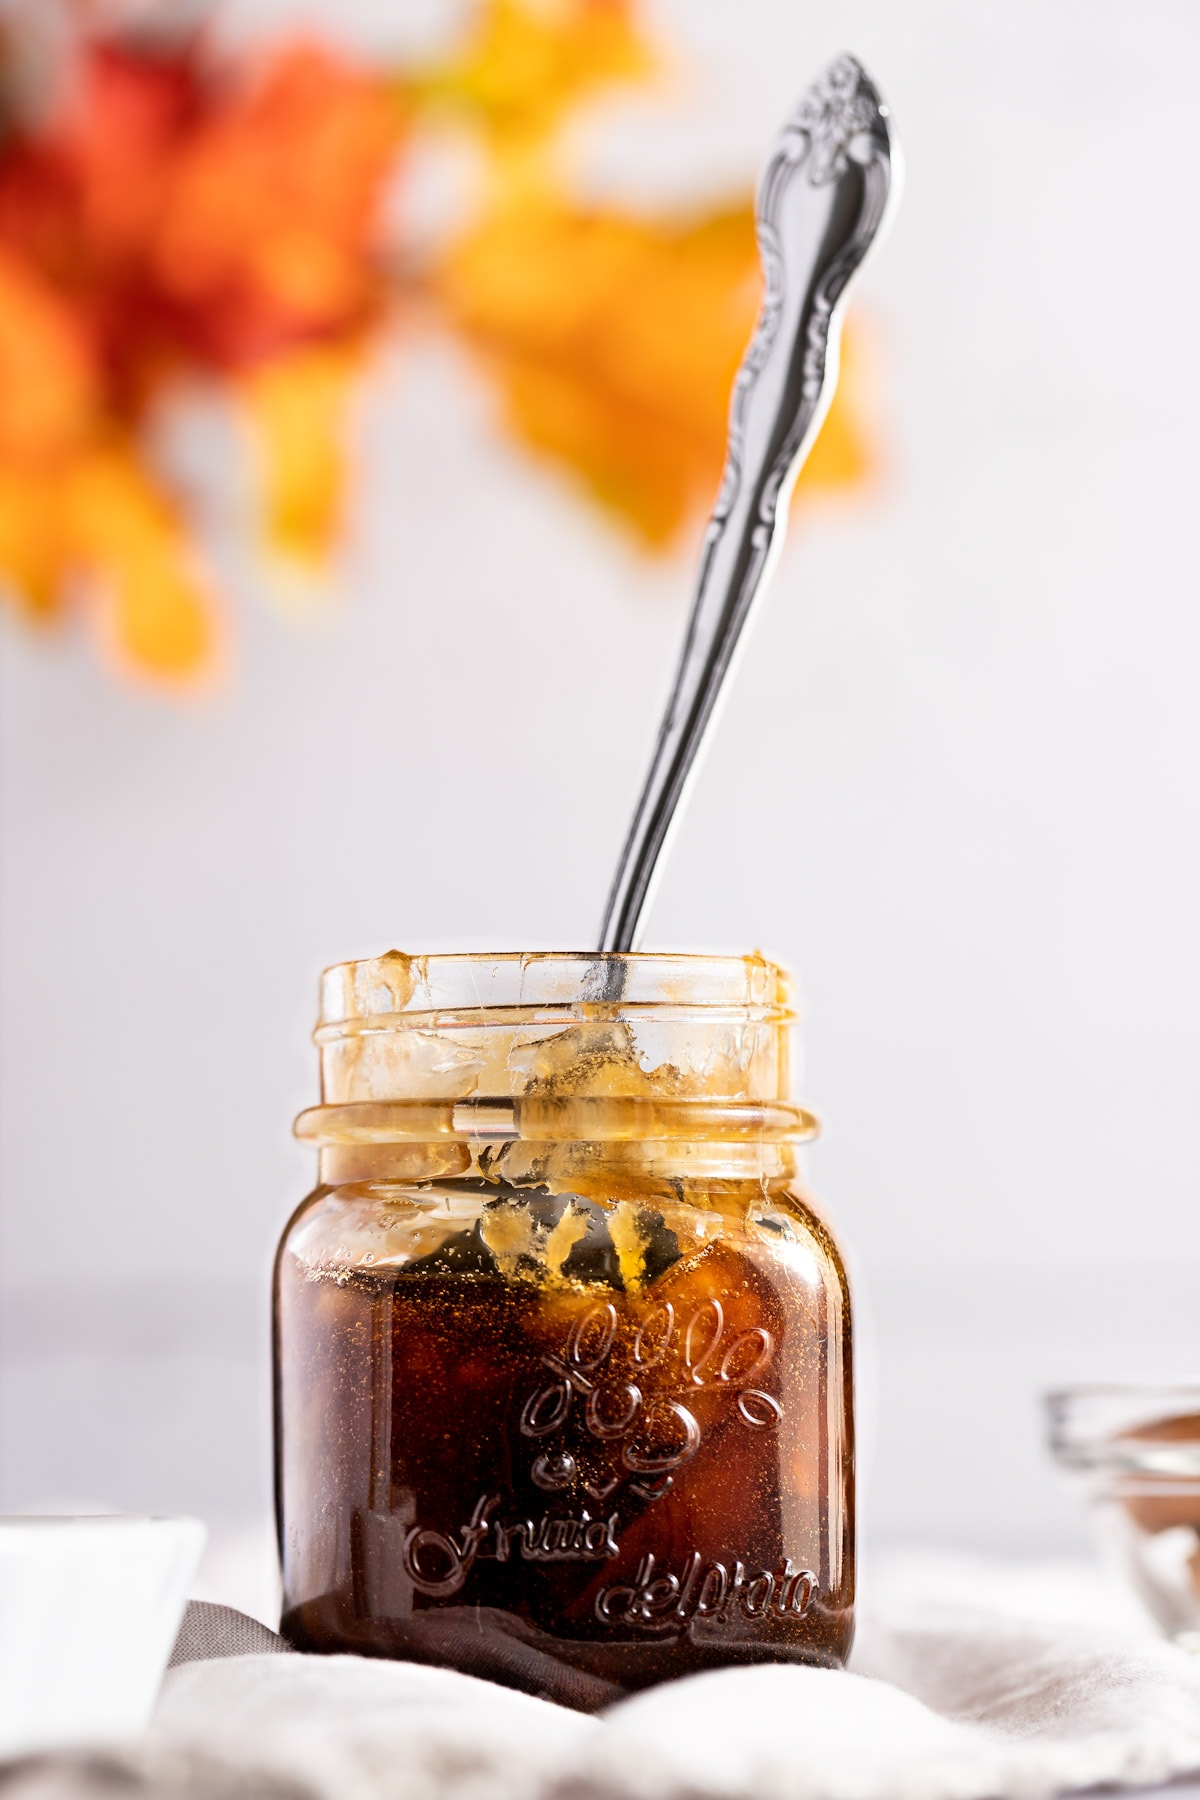 Up close photo of a small glass pot of brown sugar simple syrup, with a metal spoon sticking out of the jar, on a white background.